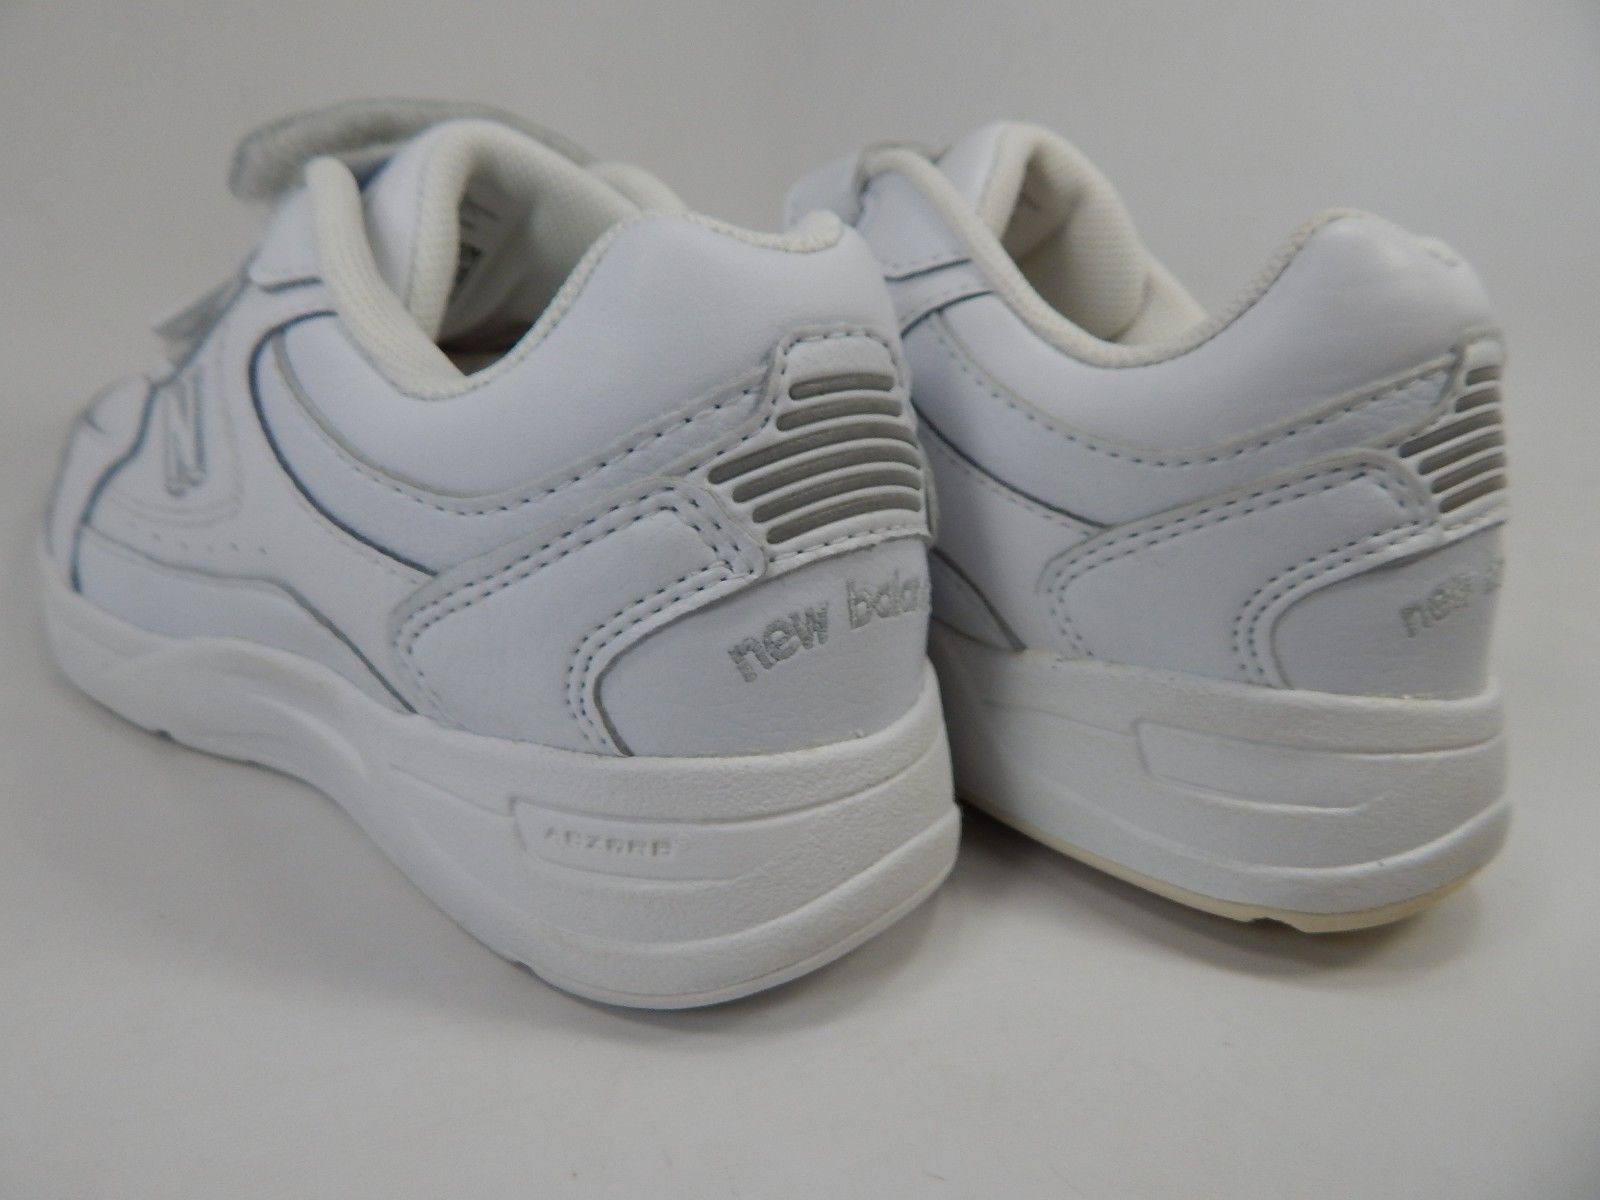 New Balance 576 Size 6 M (B) EU 36.5 Women's Walking Shoes White WW576VW